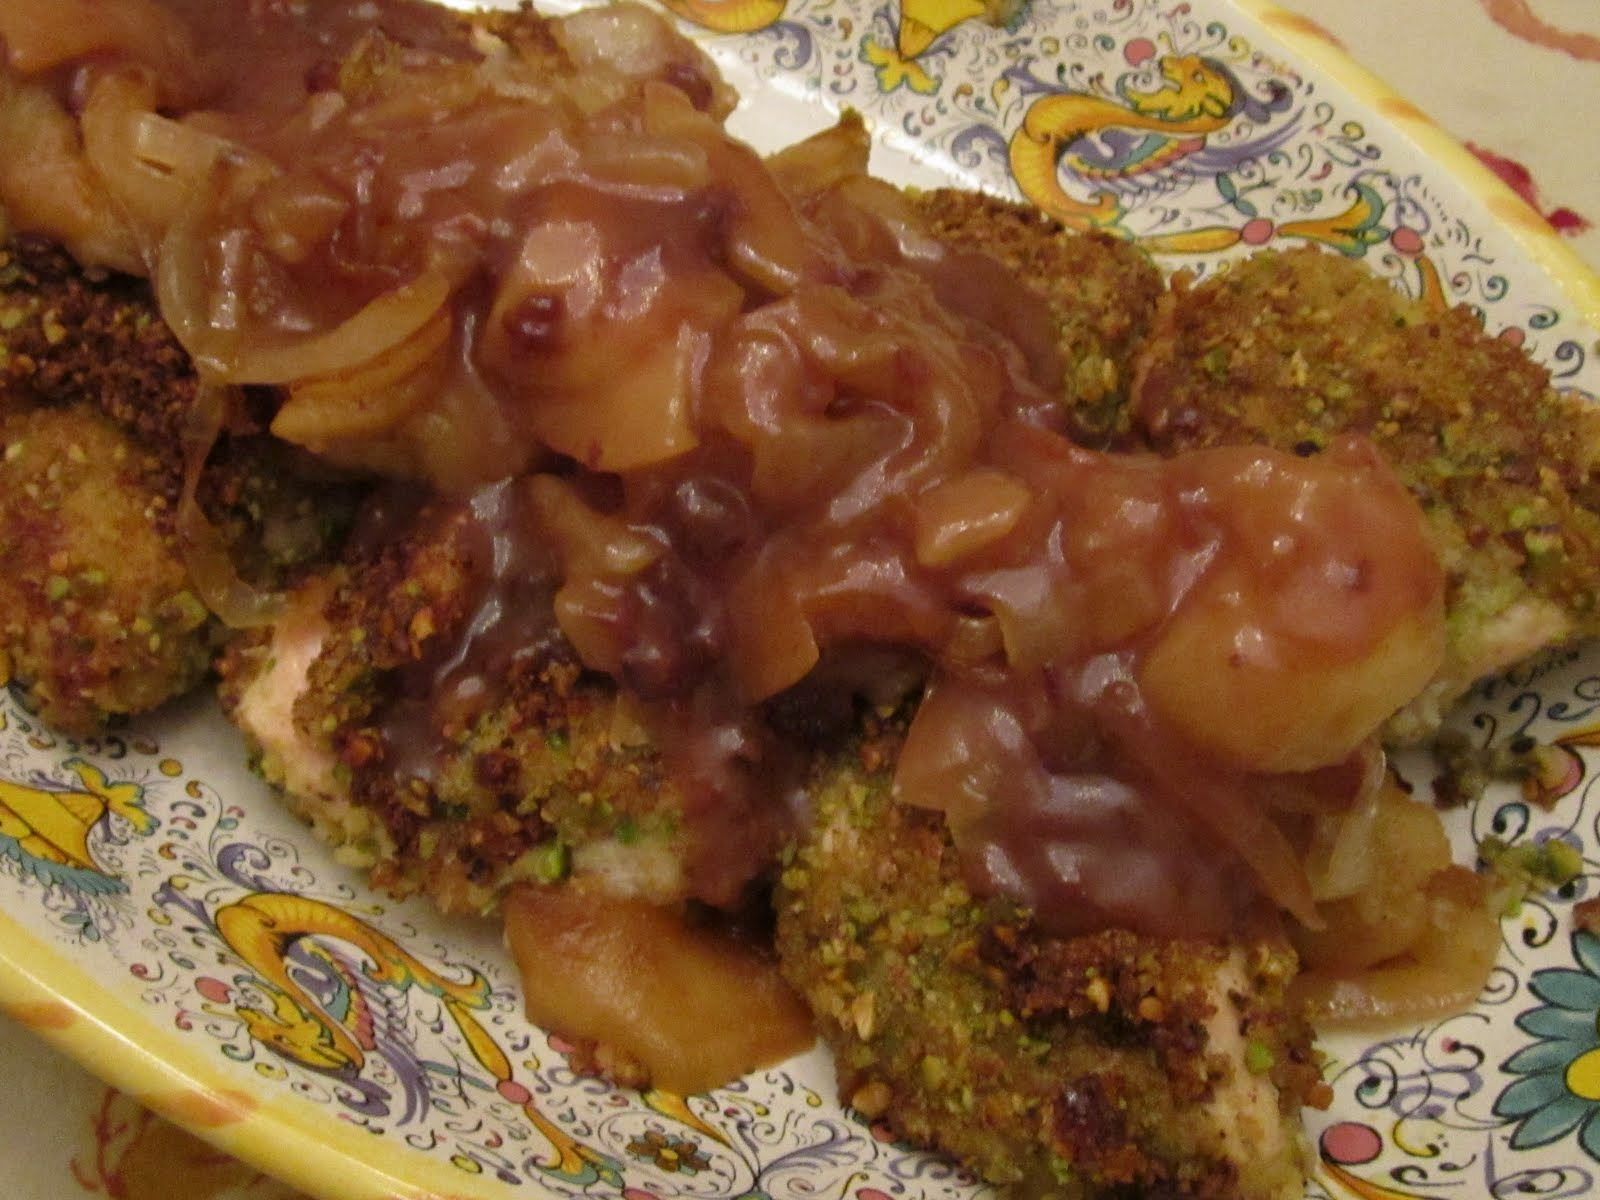 KnitOne,PearlOnion: Pistachio Encrusted Chicken